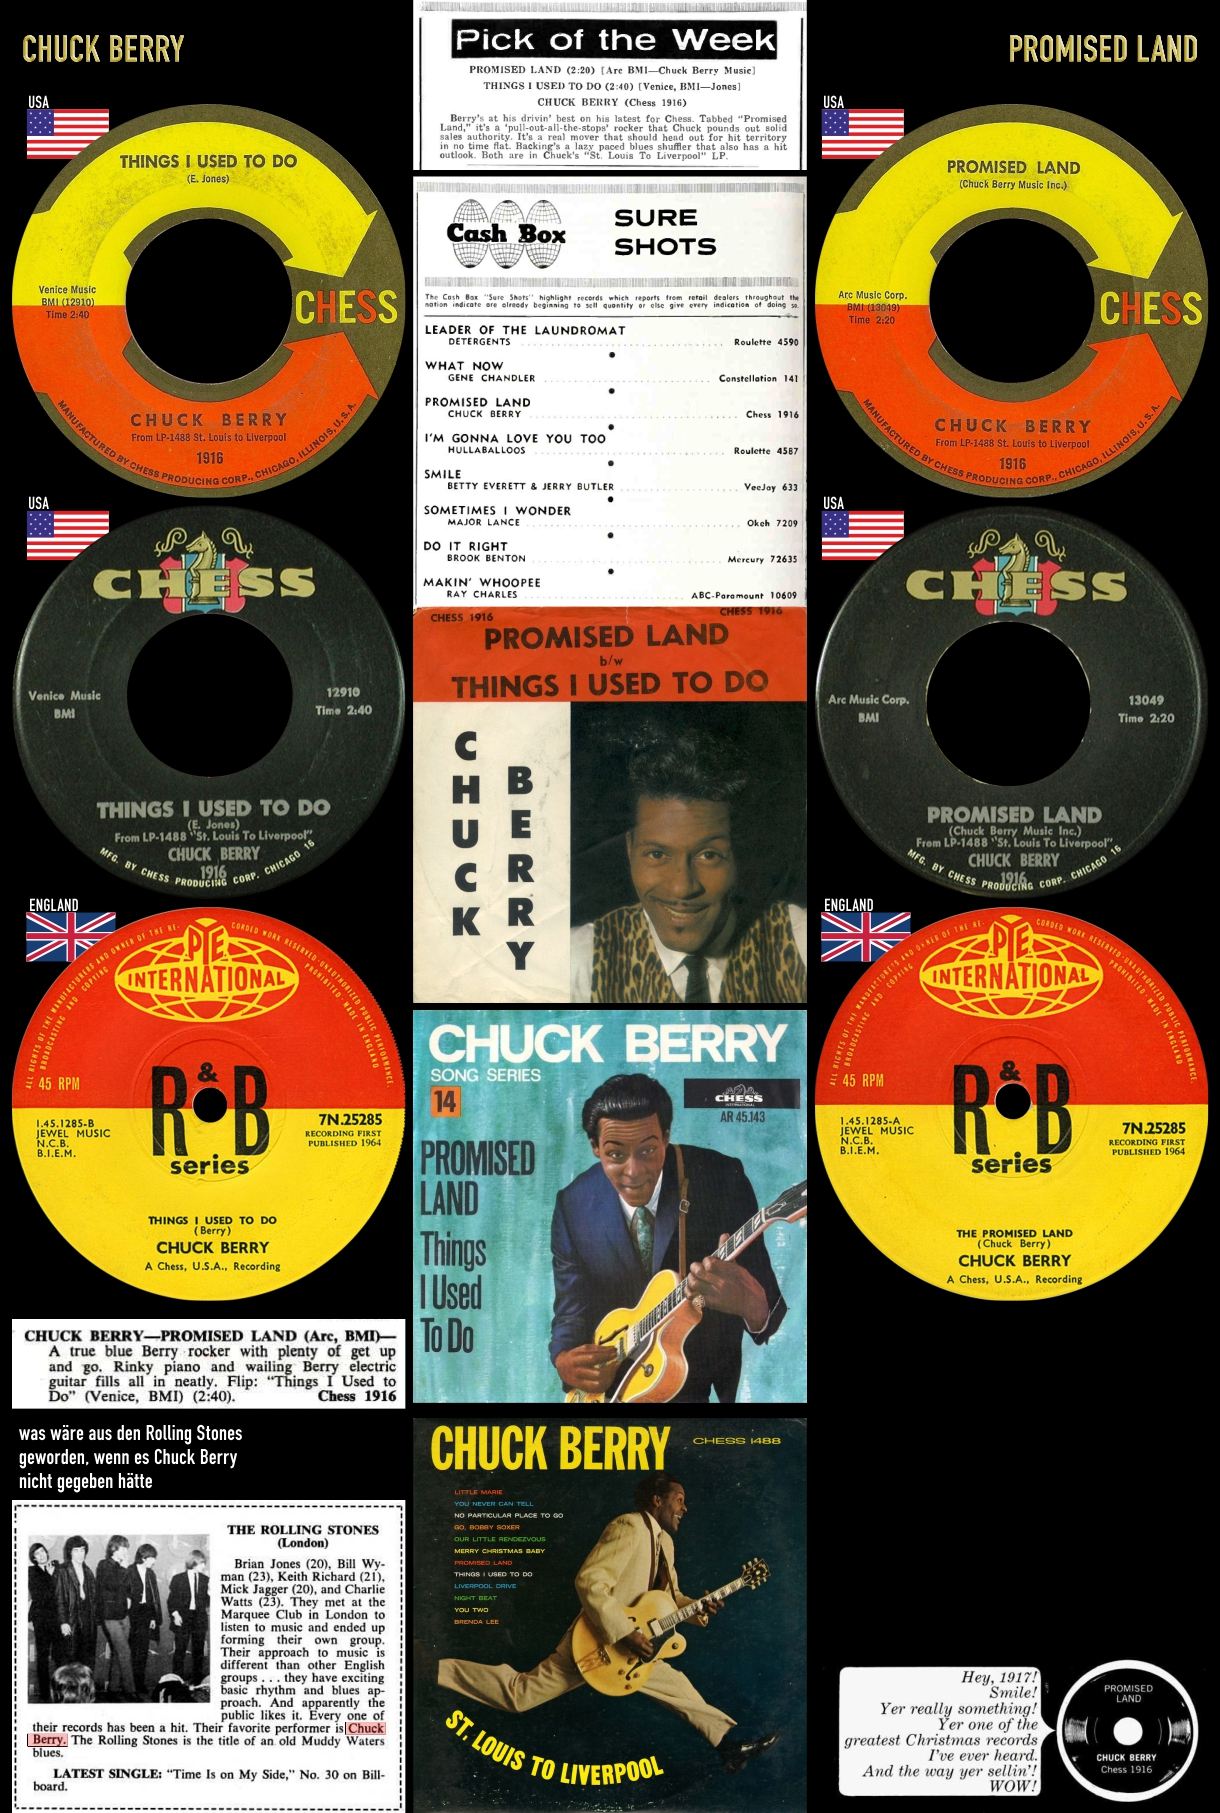 641212_Chuck Berry_Promised Land